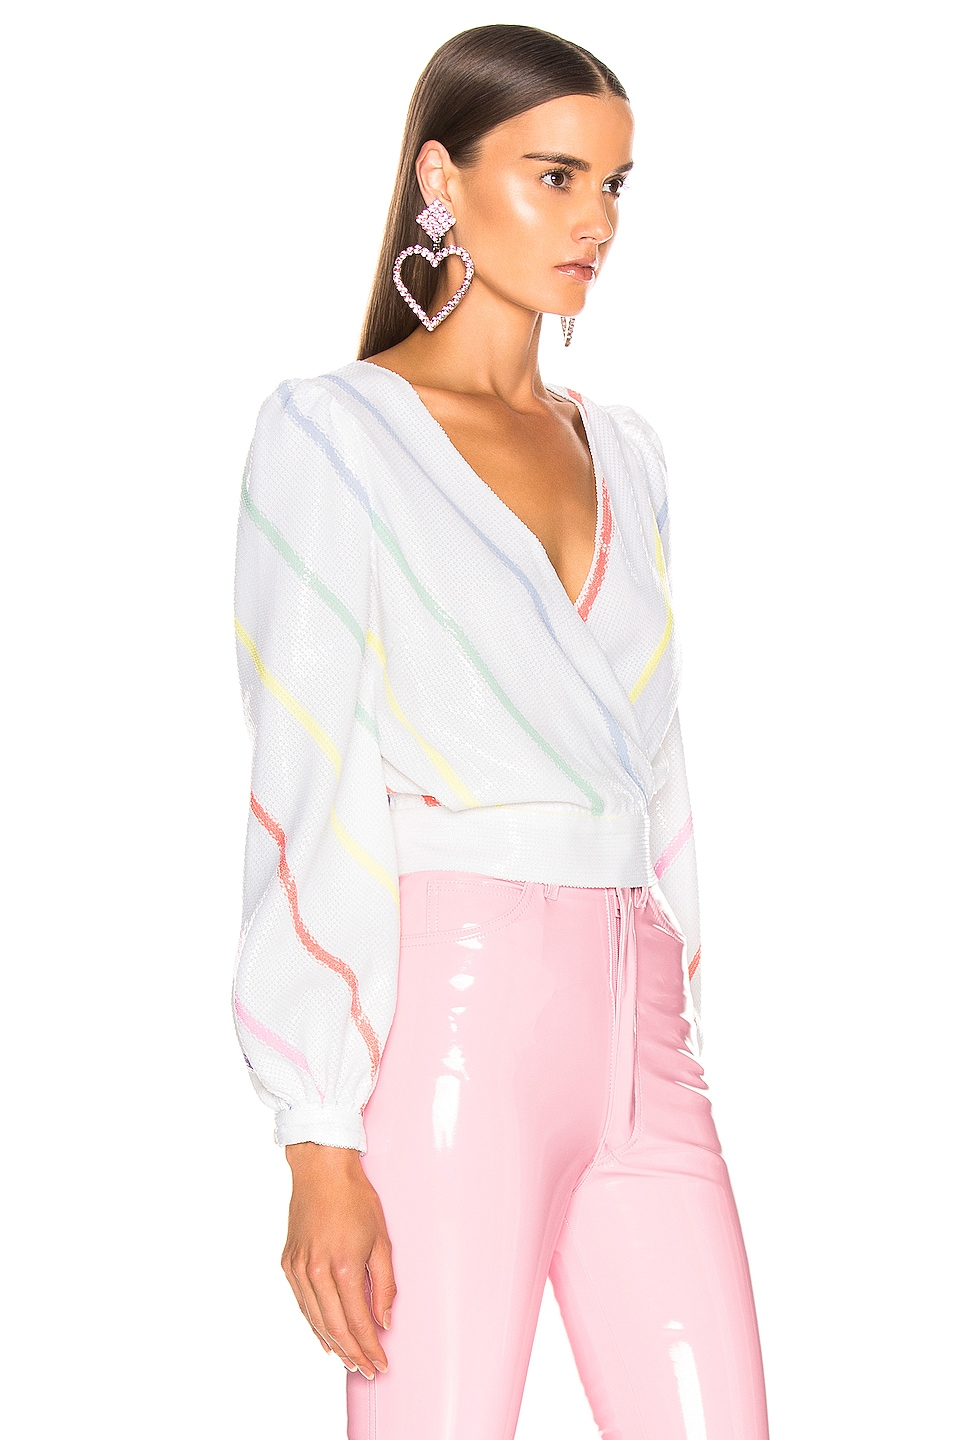 Image 2 of Olivia Rubin Kendall Top in Thin White Stripe